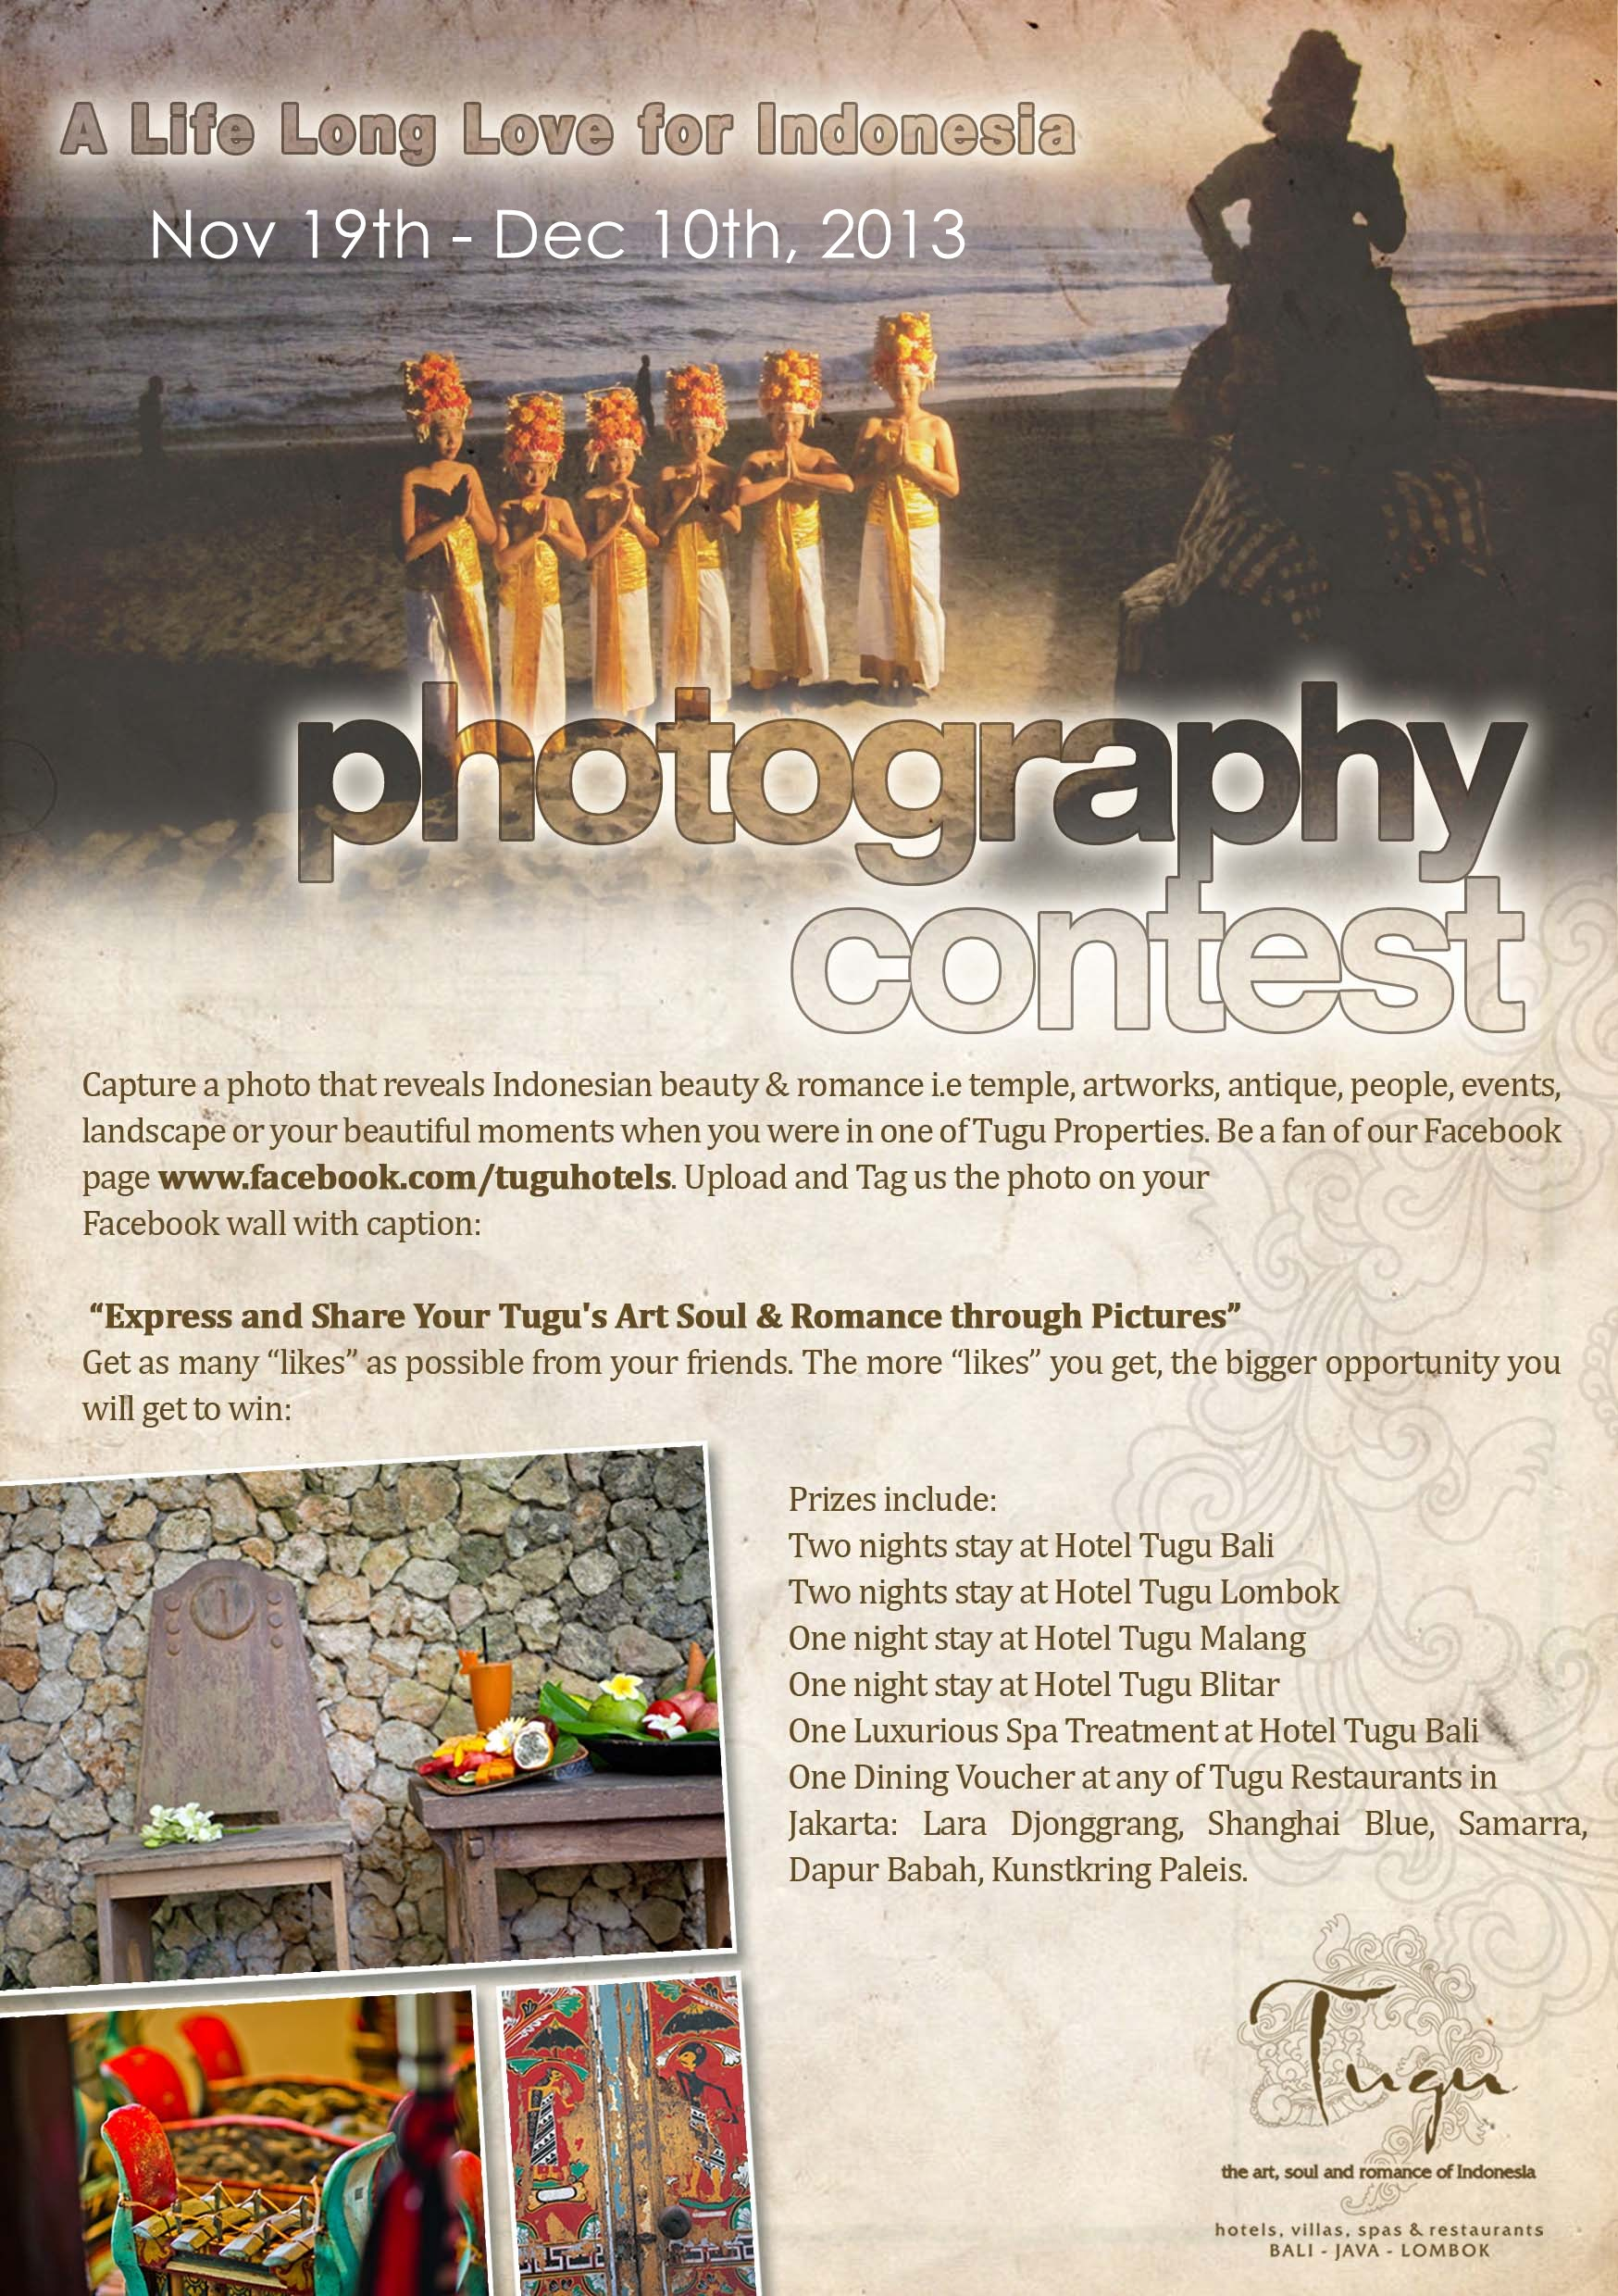 a life long love for indonesia - photography contest nov 19th - dec 10th 2013